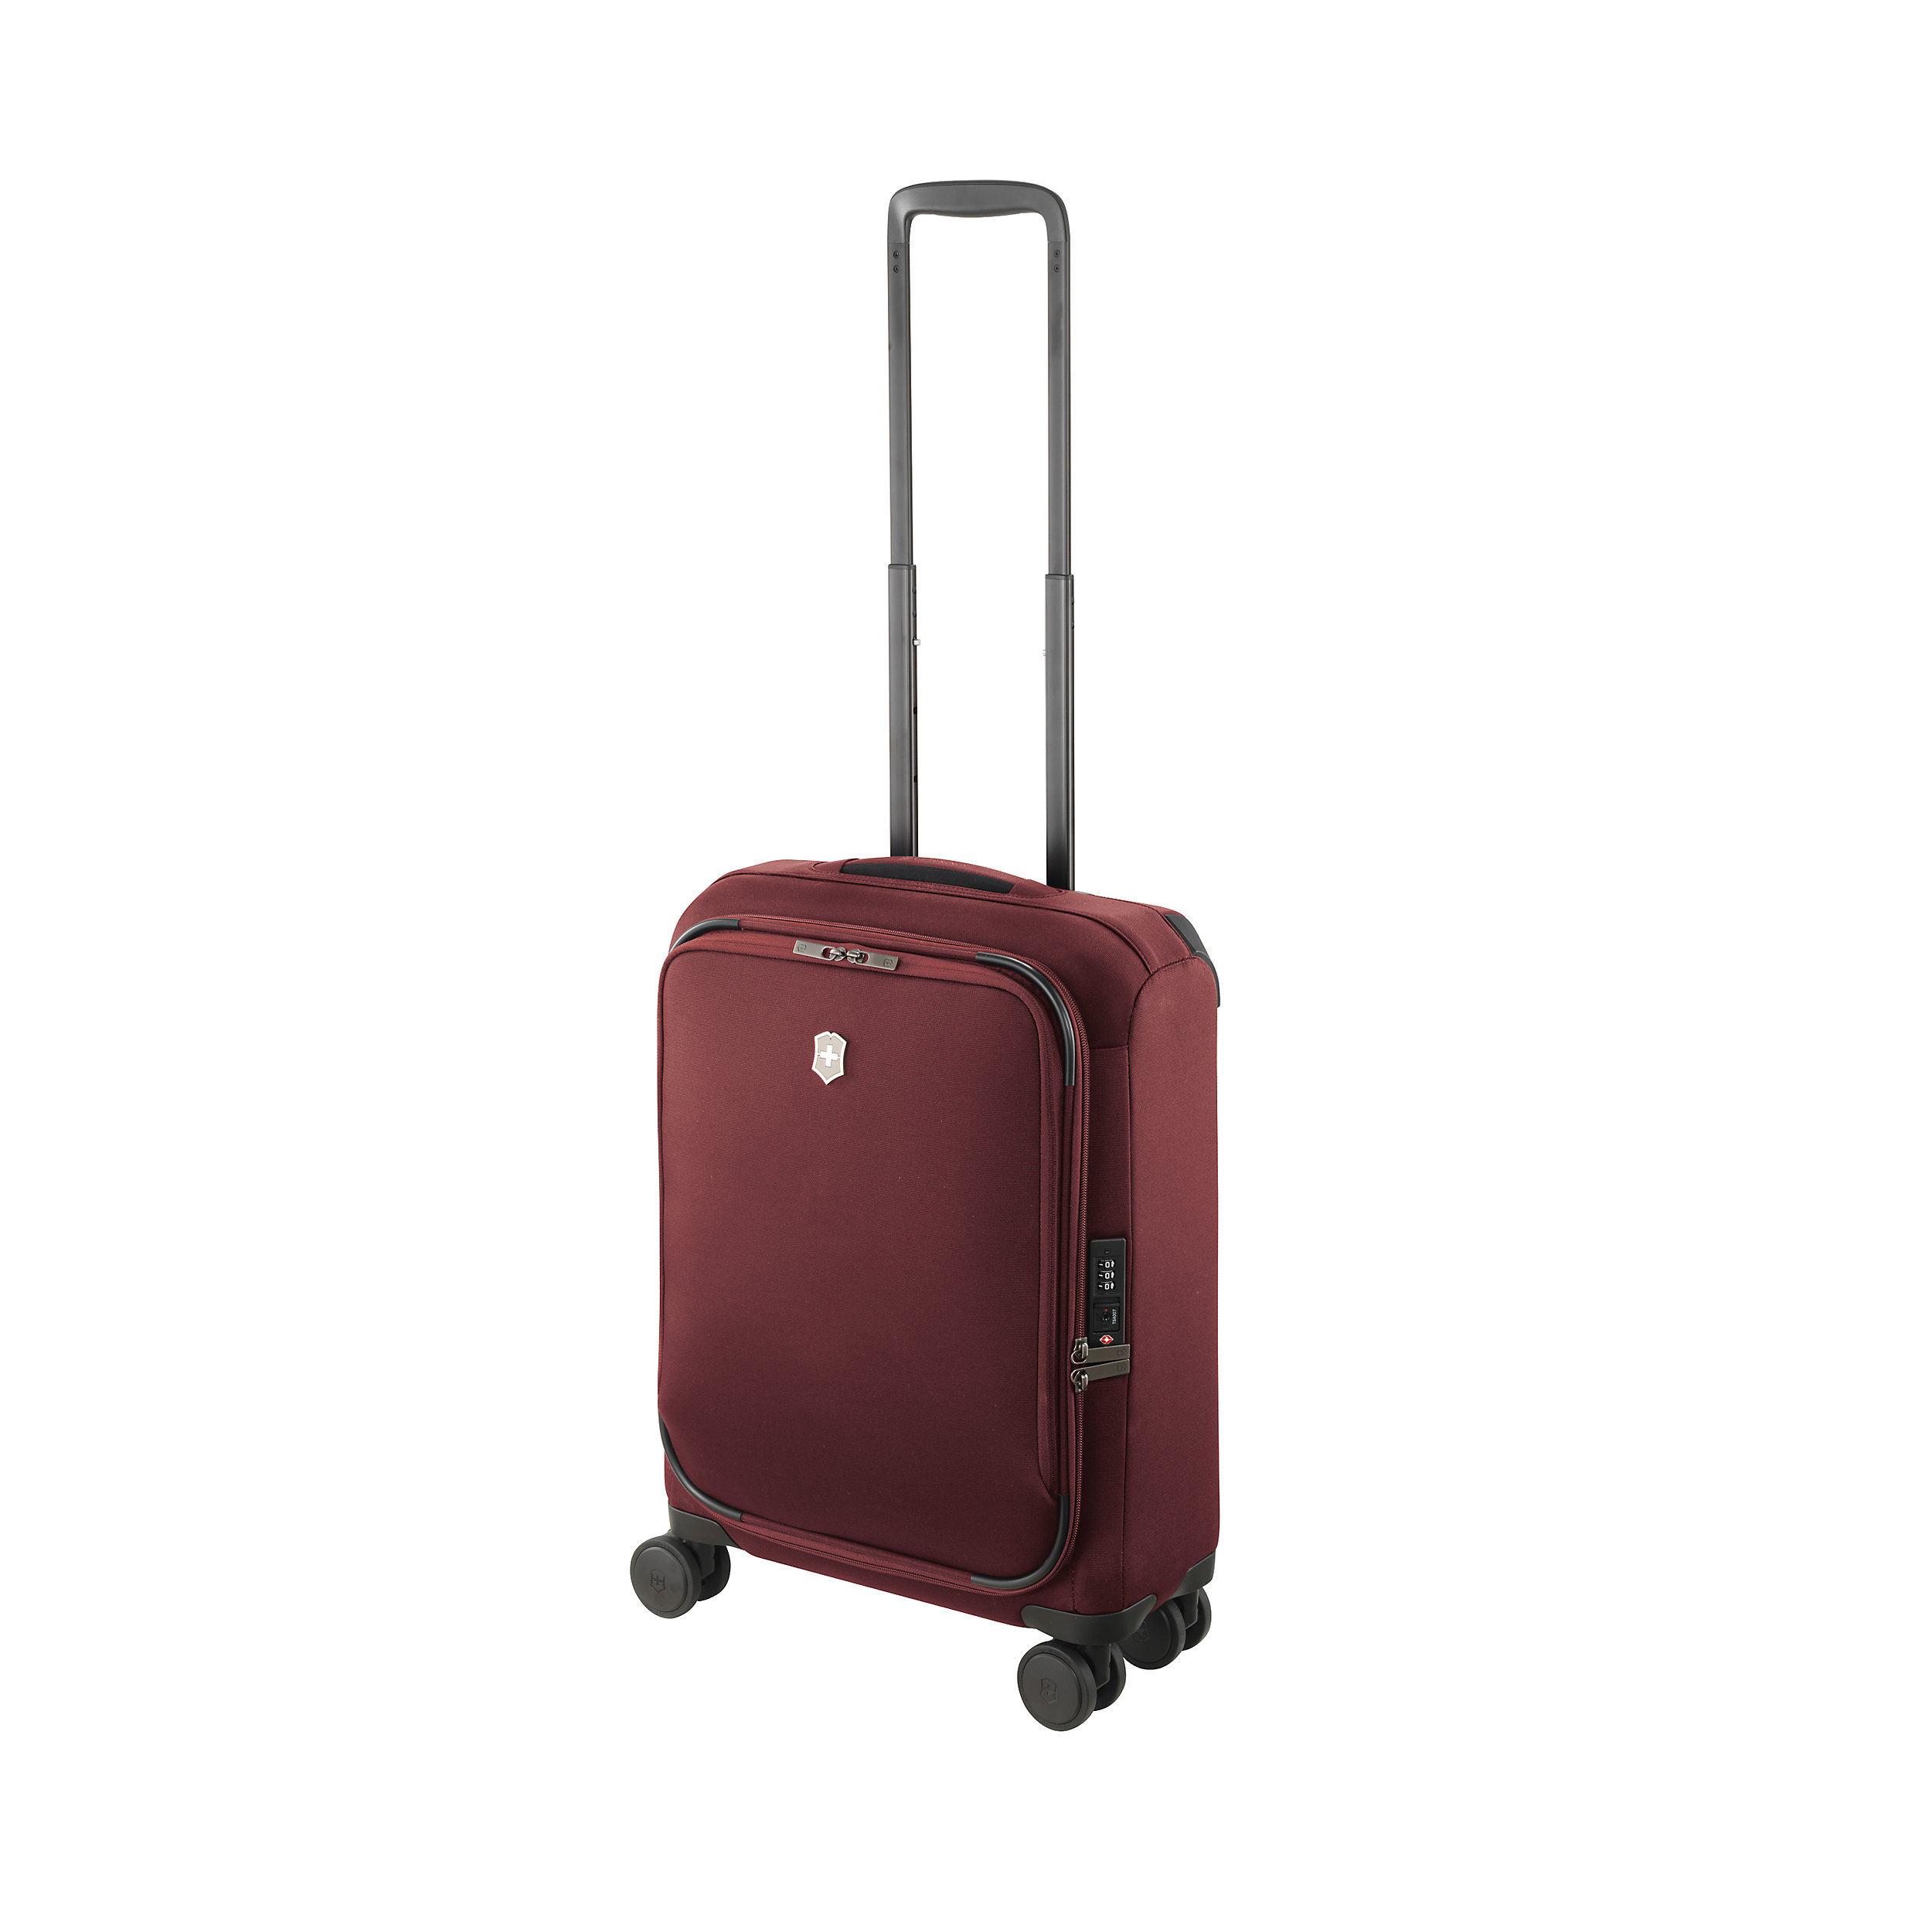 Carry-on with 4 wheels 55 cm Connex S 28 Liter